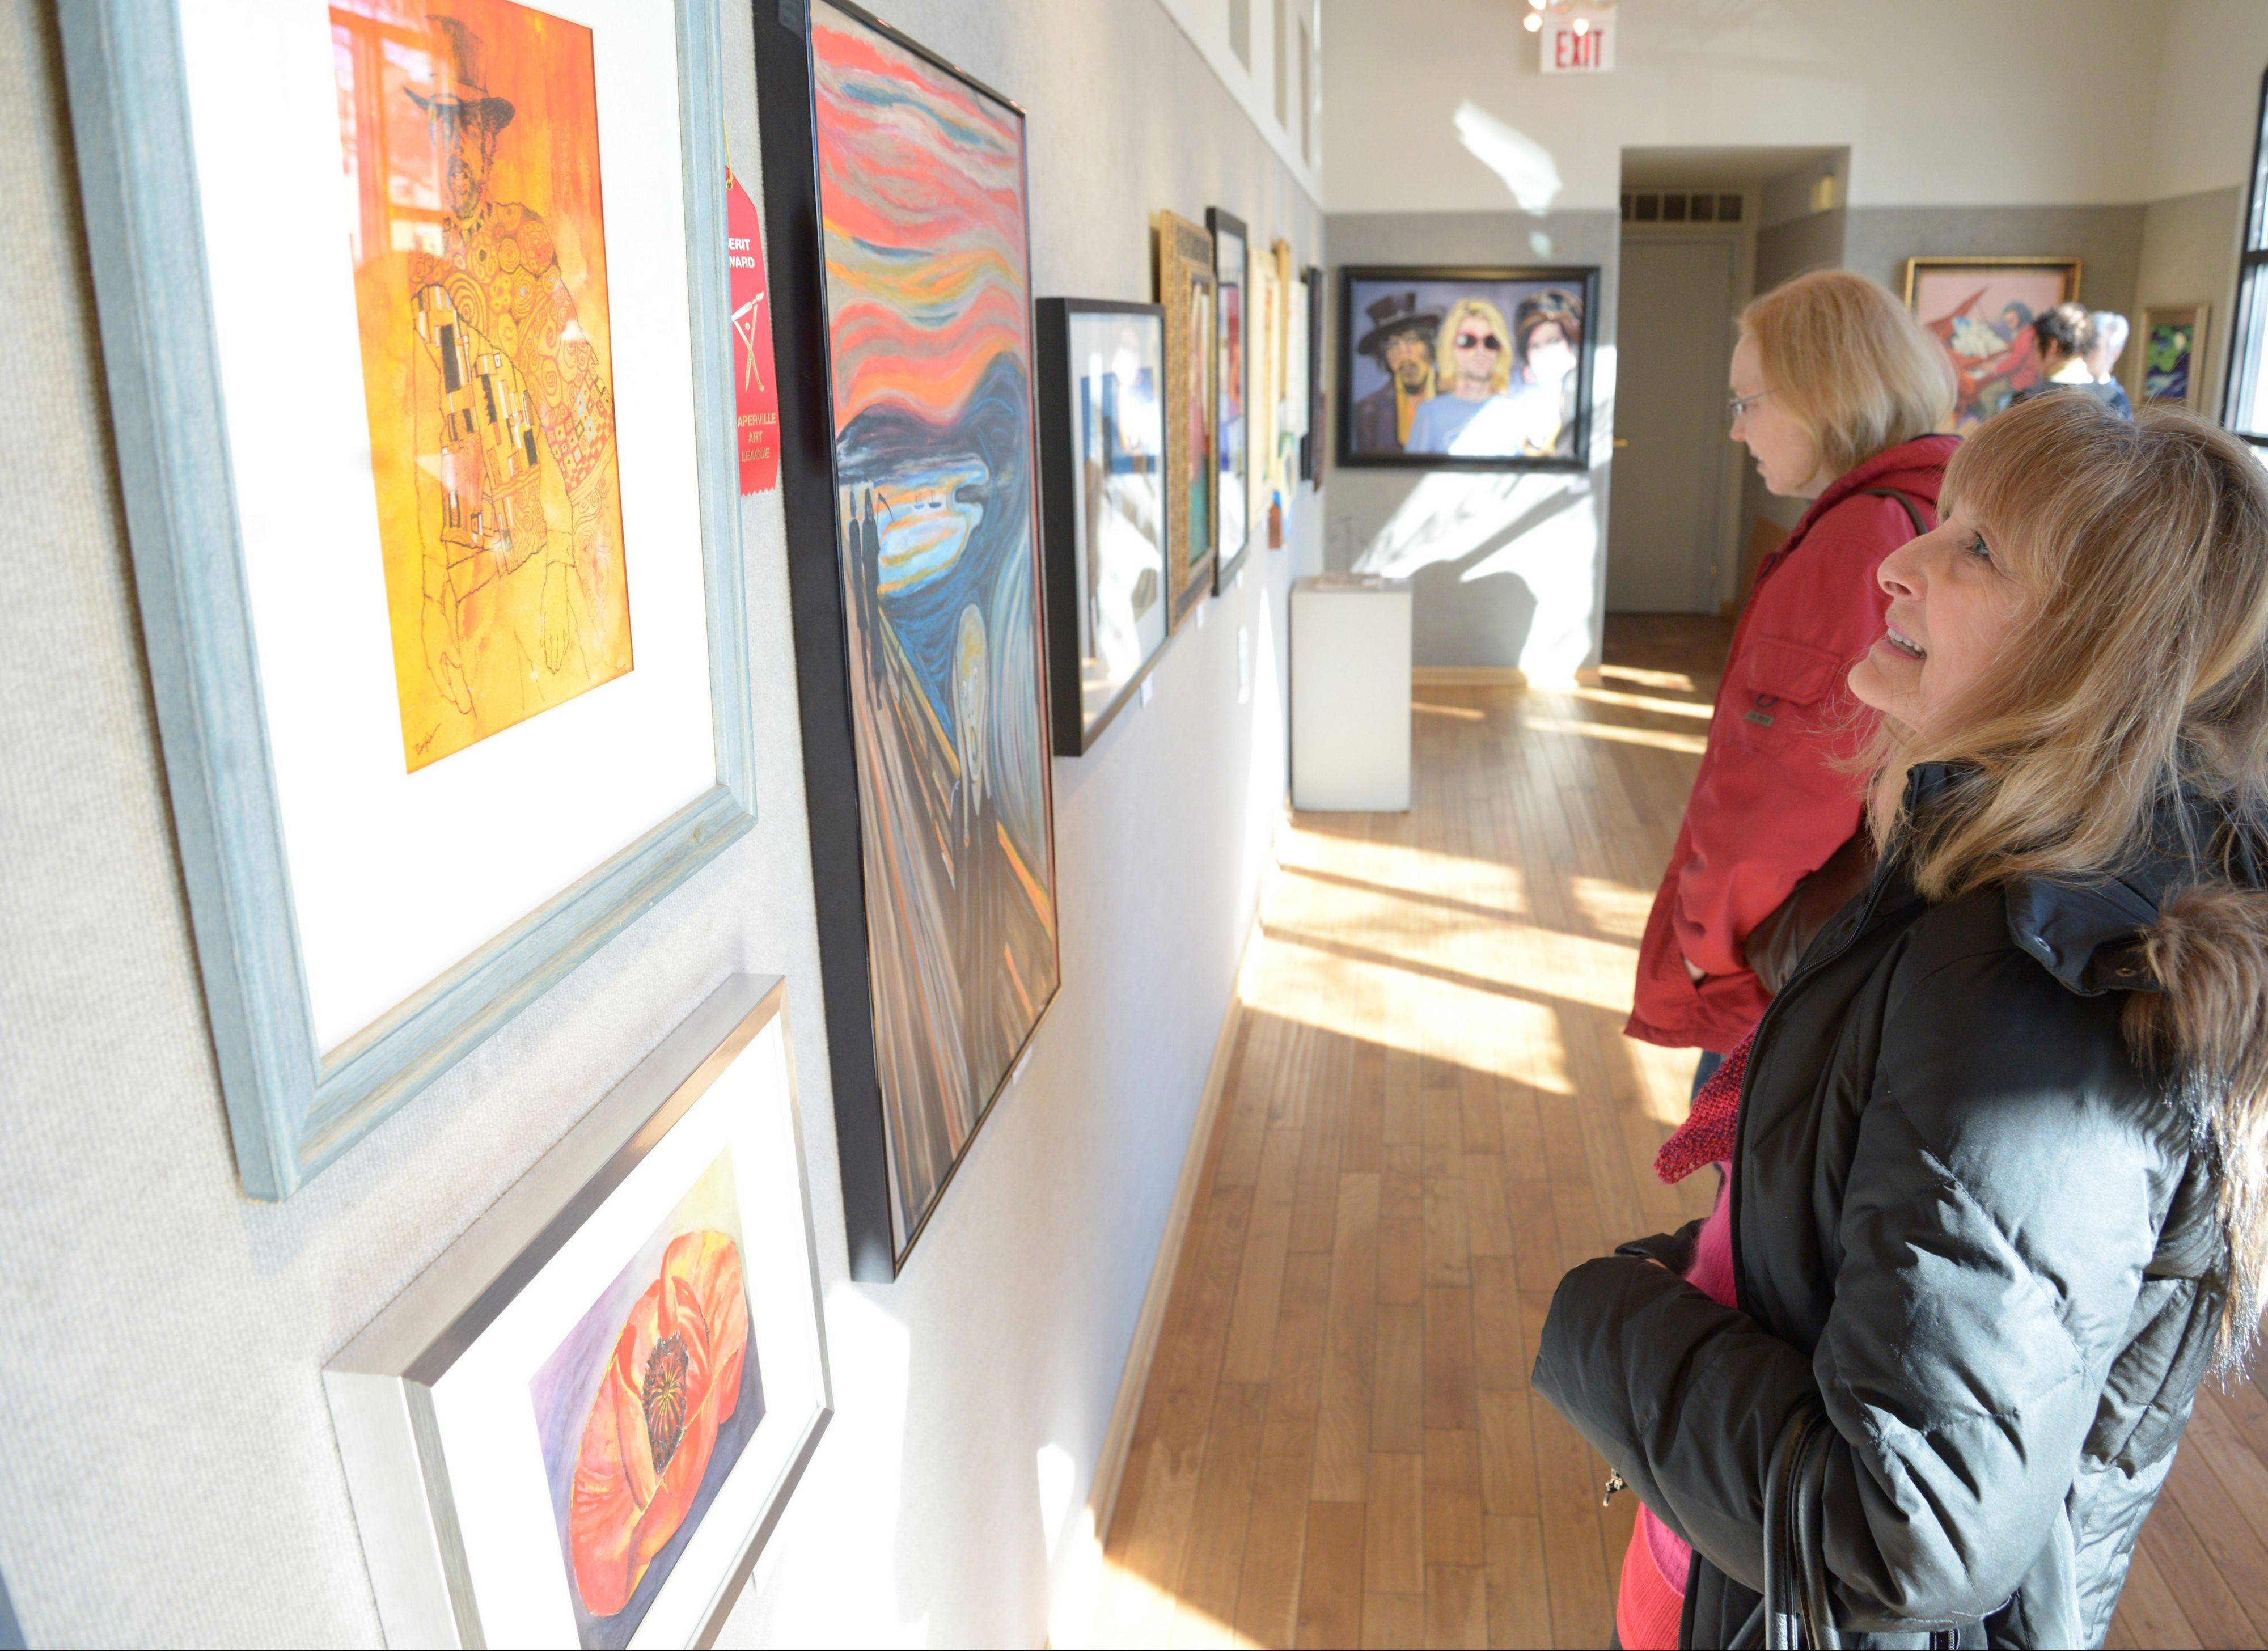 Rita Moon Kin, of Aurora, gets an eyeful of art during the �Fabulous Fakes� show Sunday at the Naperville Fine Art Center and Gallery in Naperville. The exhibit runs through March 2.